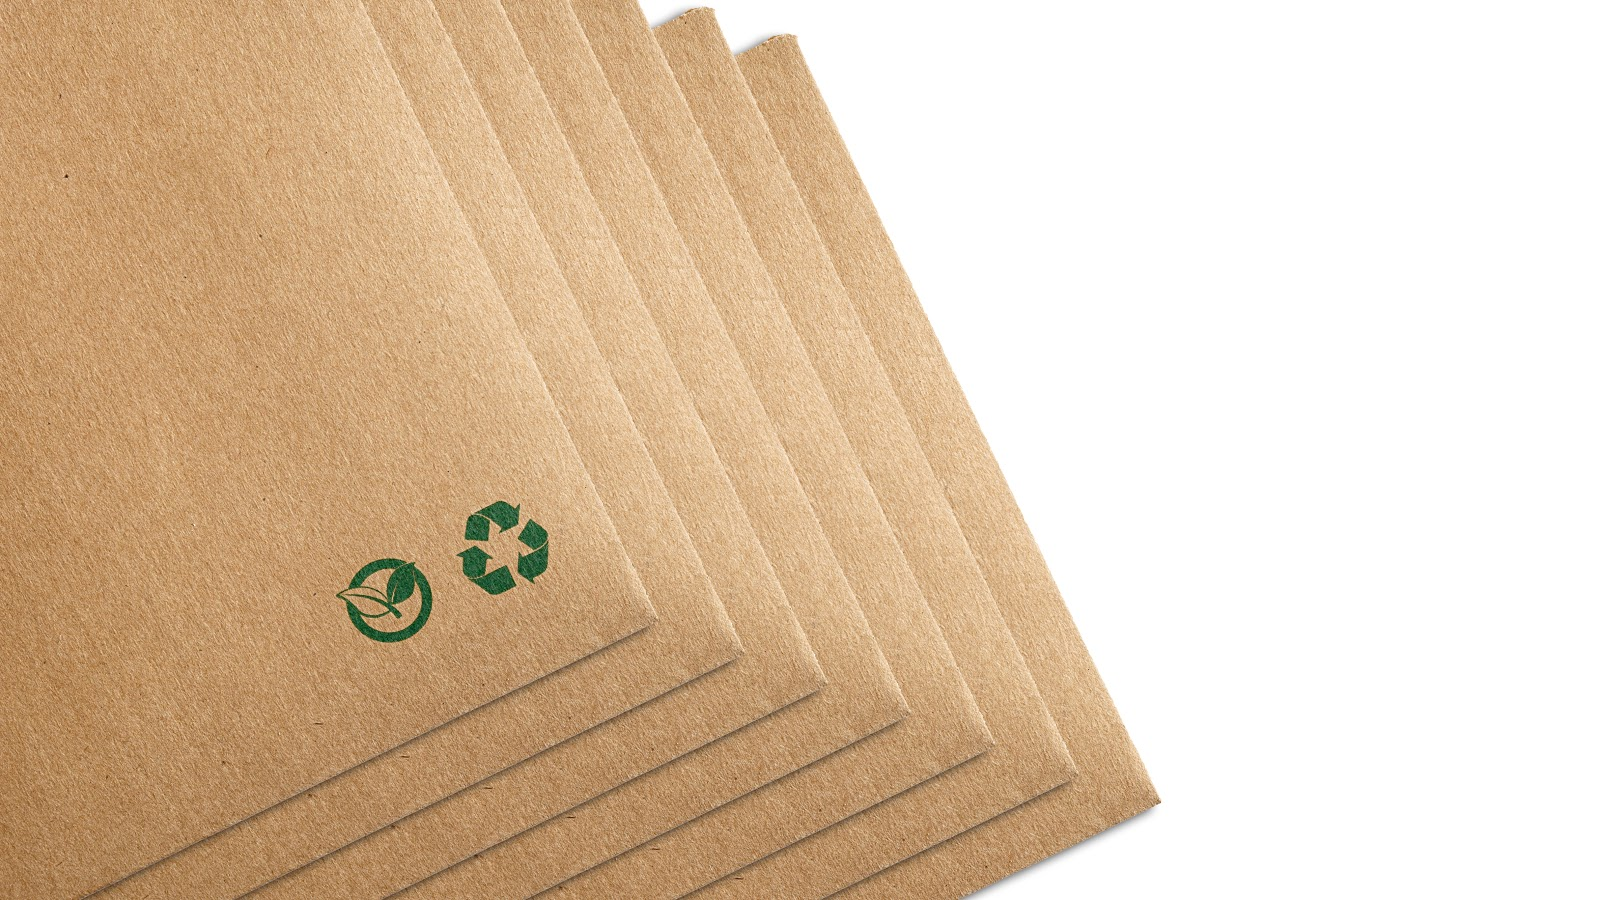 Recycled envelopes with green sustainability icons.jpg